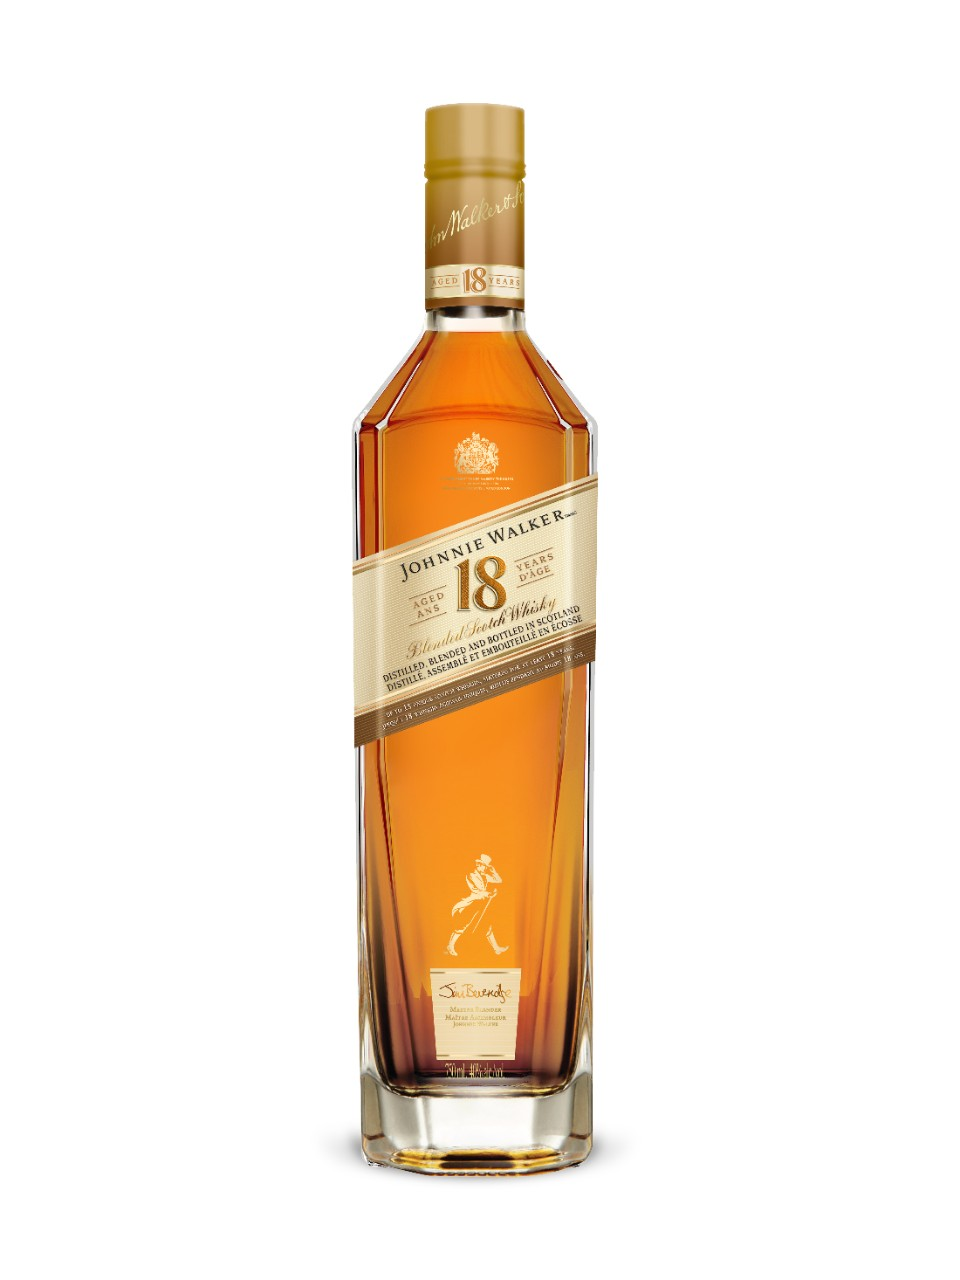 Johnnie Walker 18 Year Old Scotch Whisky from LCBO